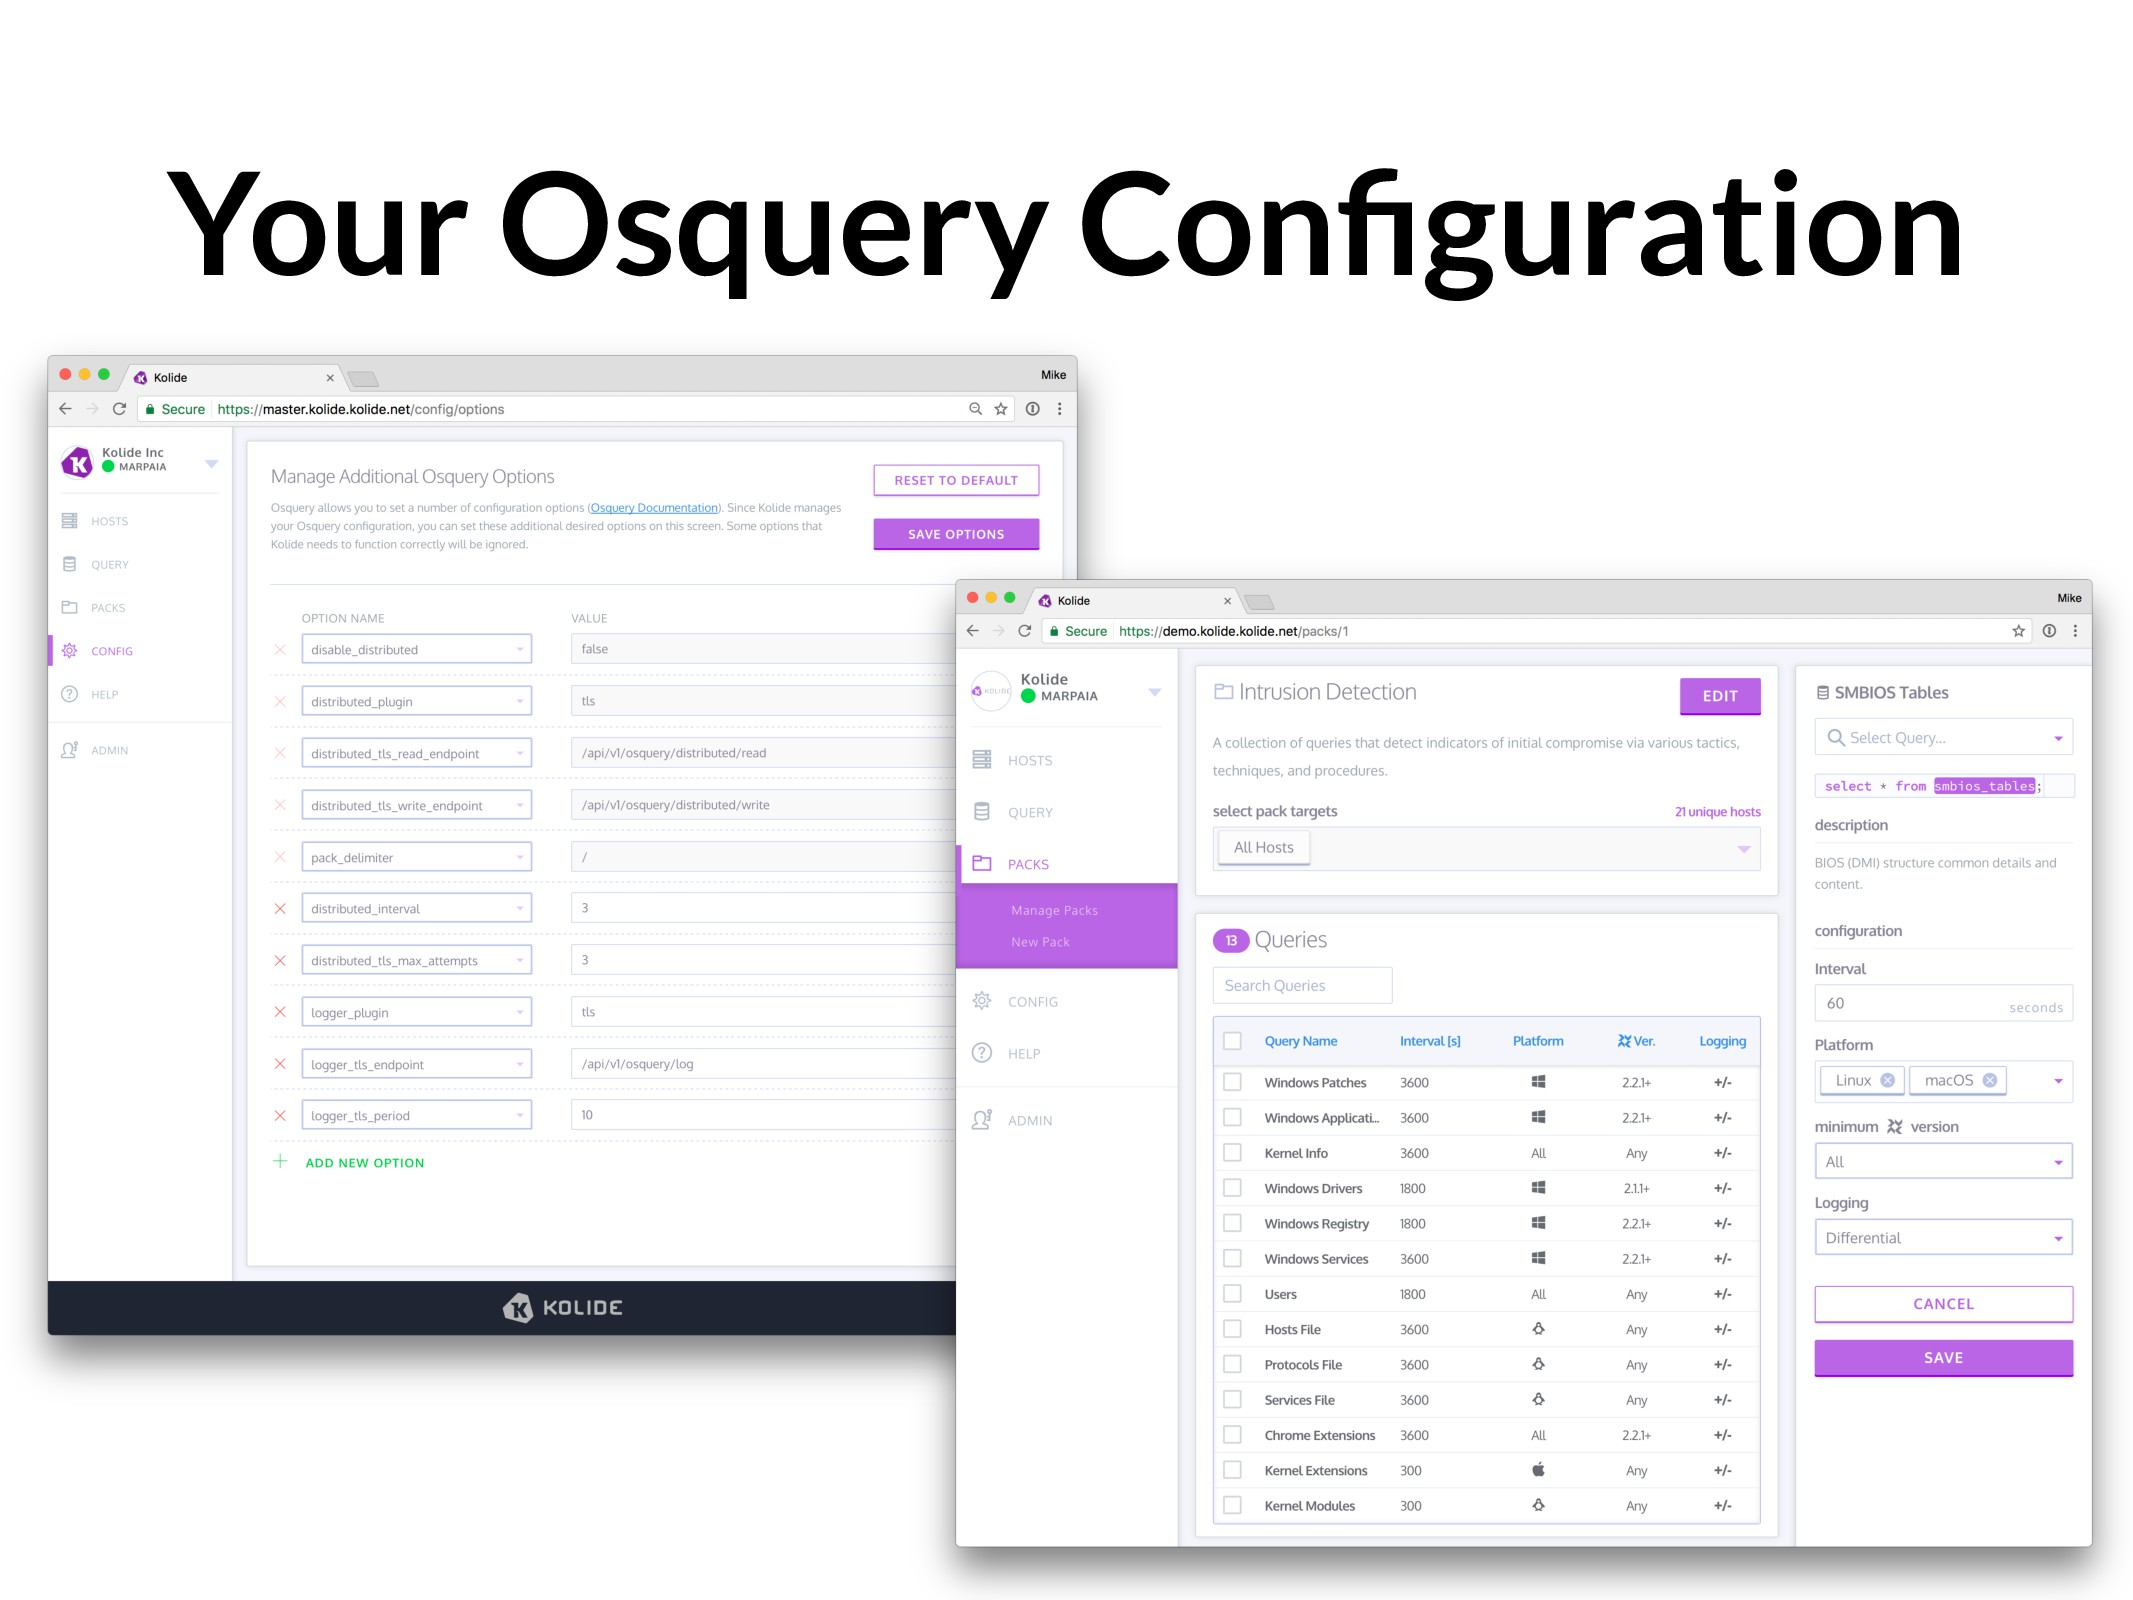 Your Osquery Configuration